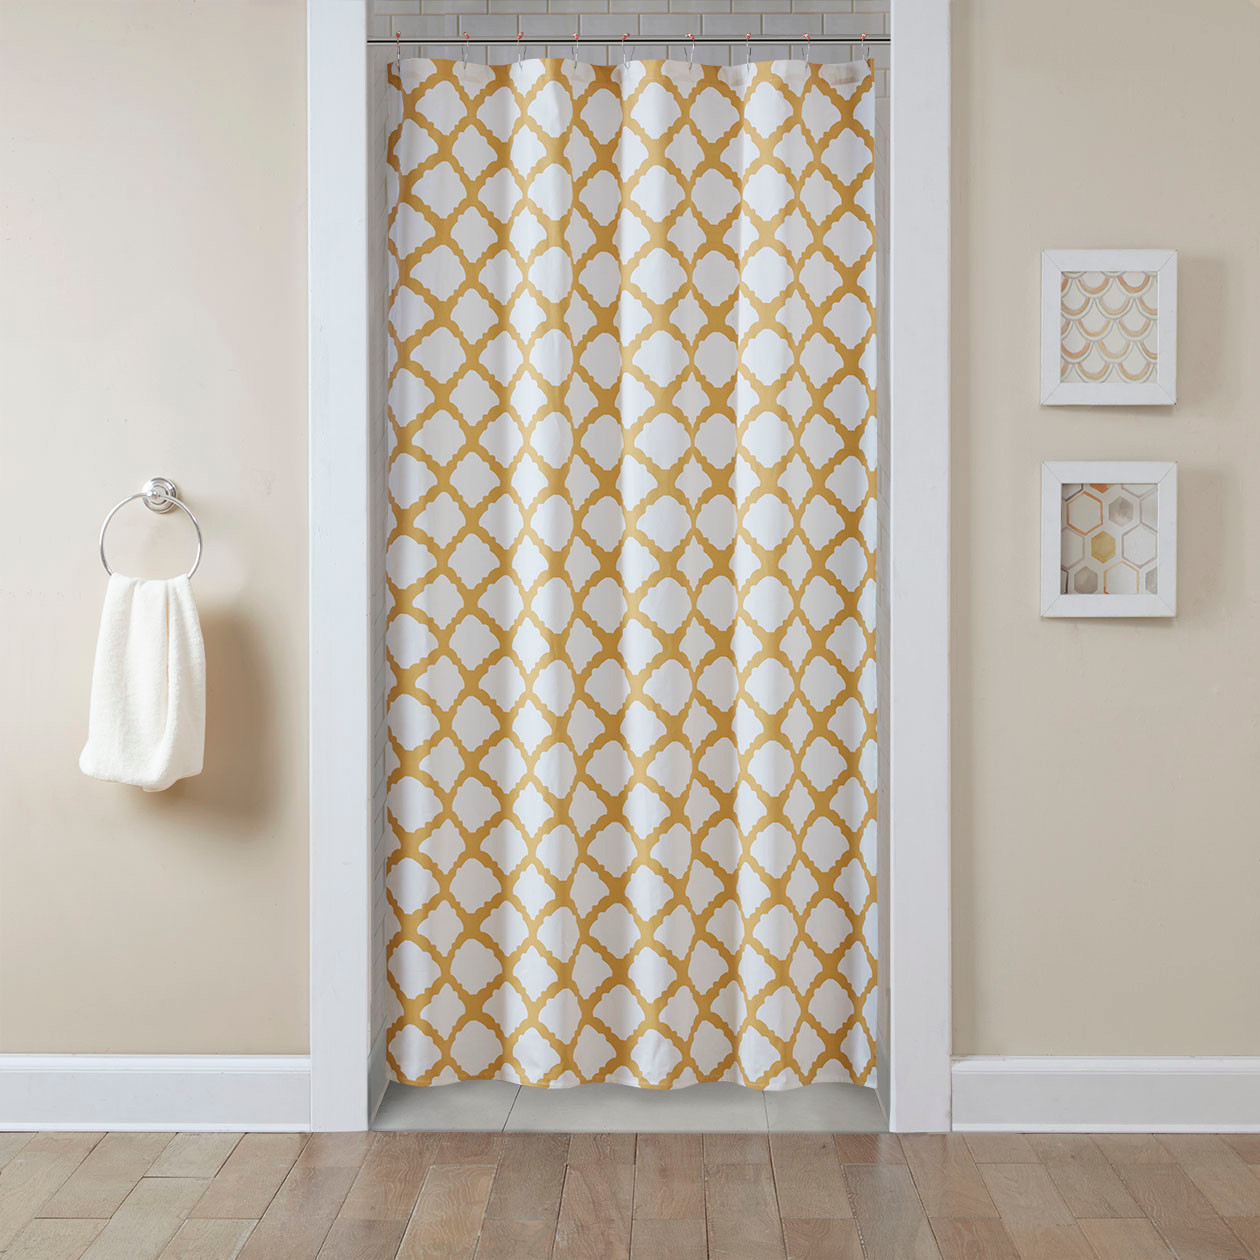 Bed Bath And Beyond Bathroom Window Curtains Bed Bath and Beyond Wall D